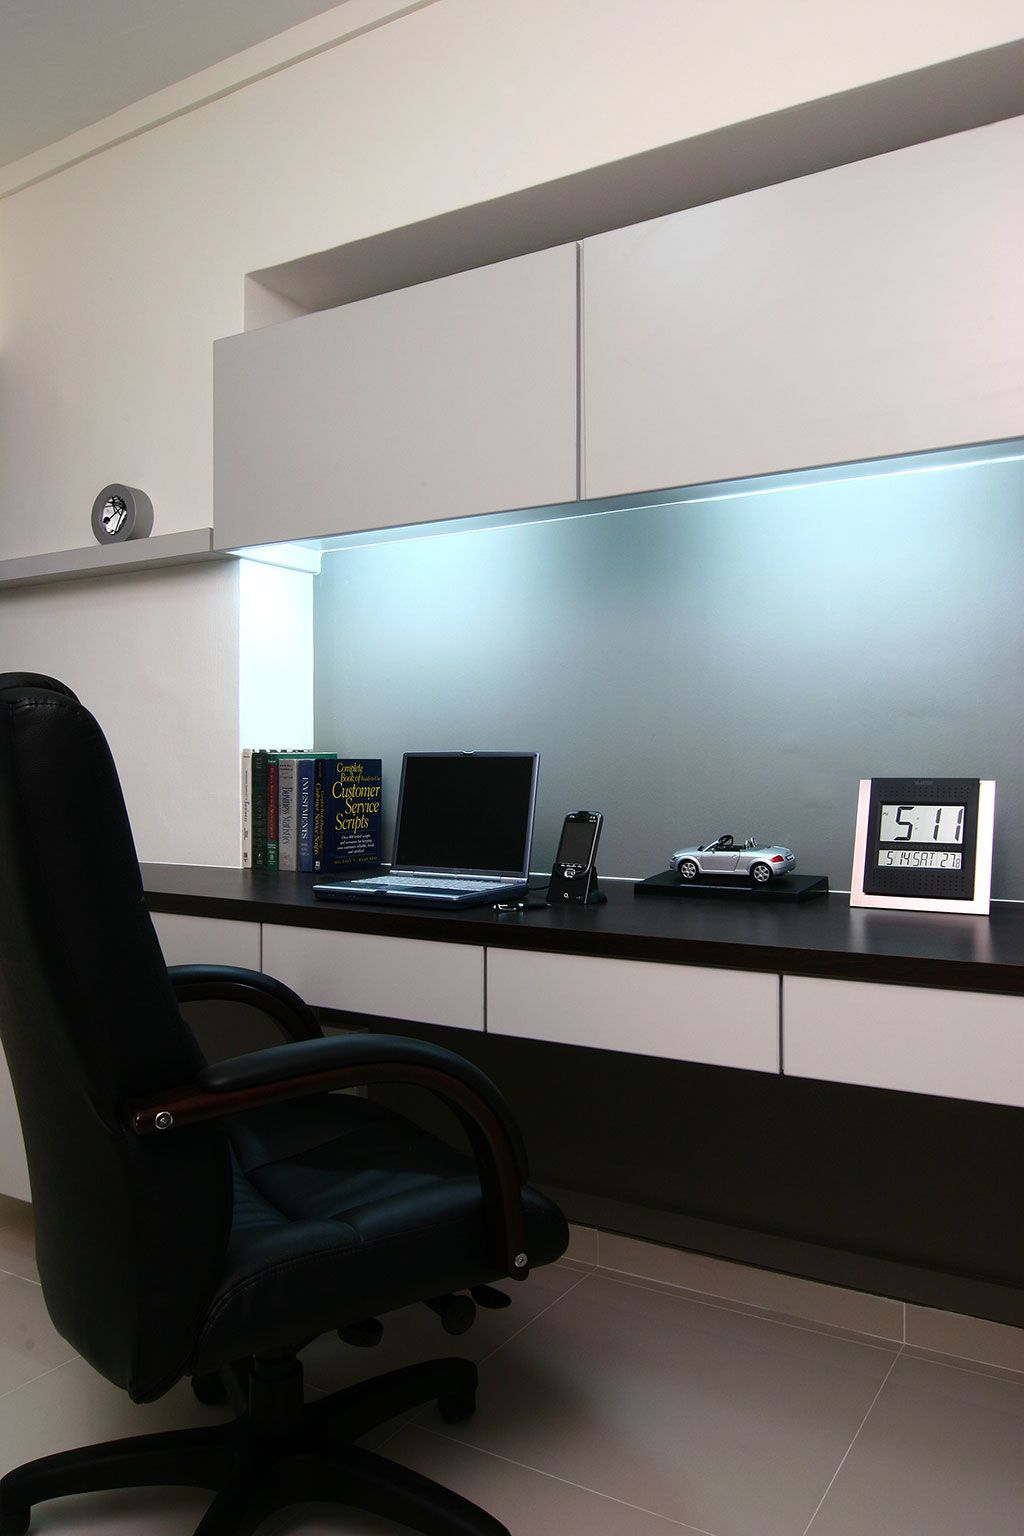 bedroom chair singapore desk school image result for study area in living room hdb